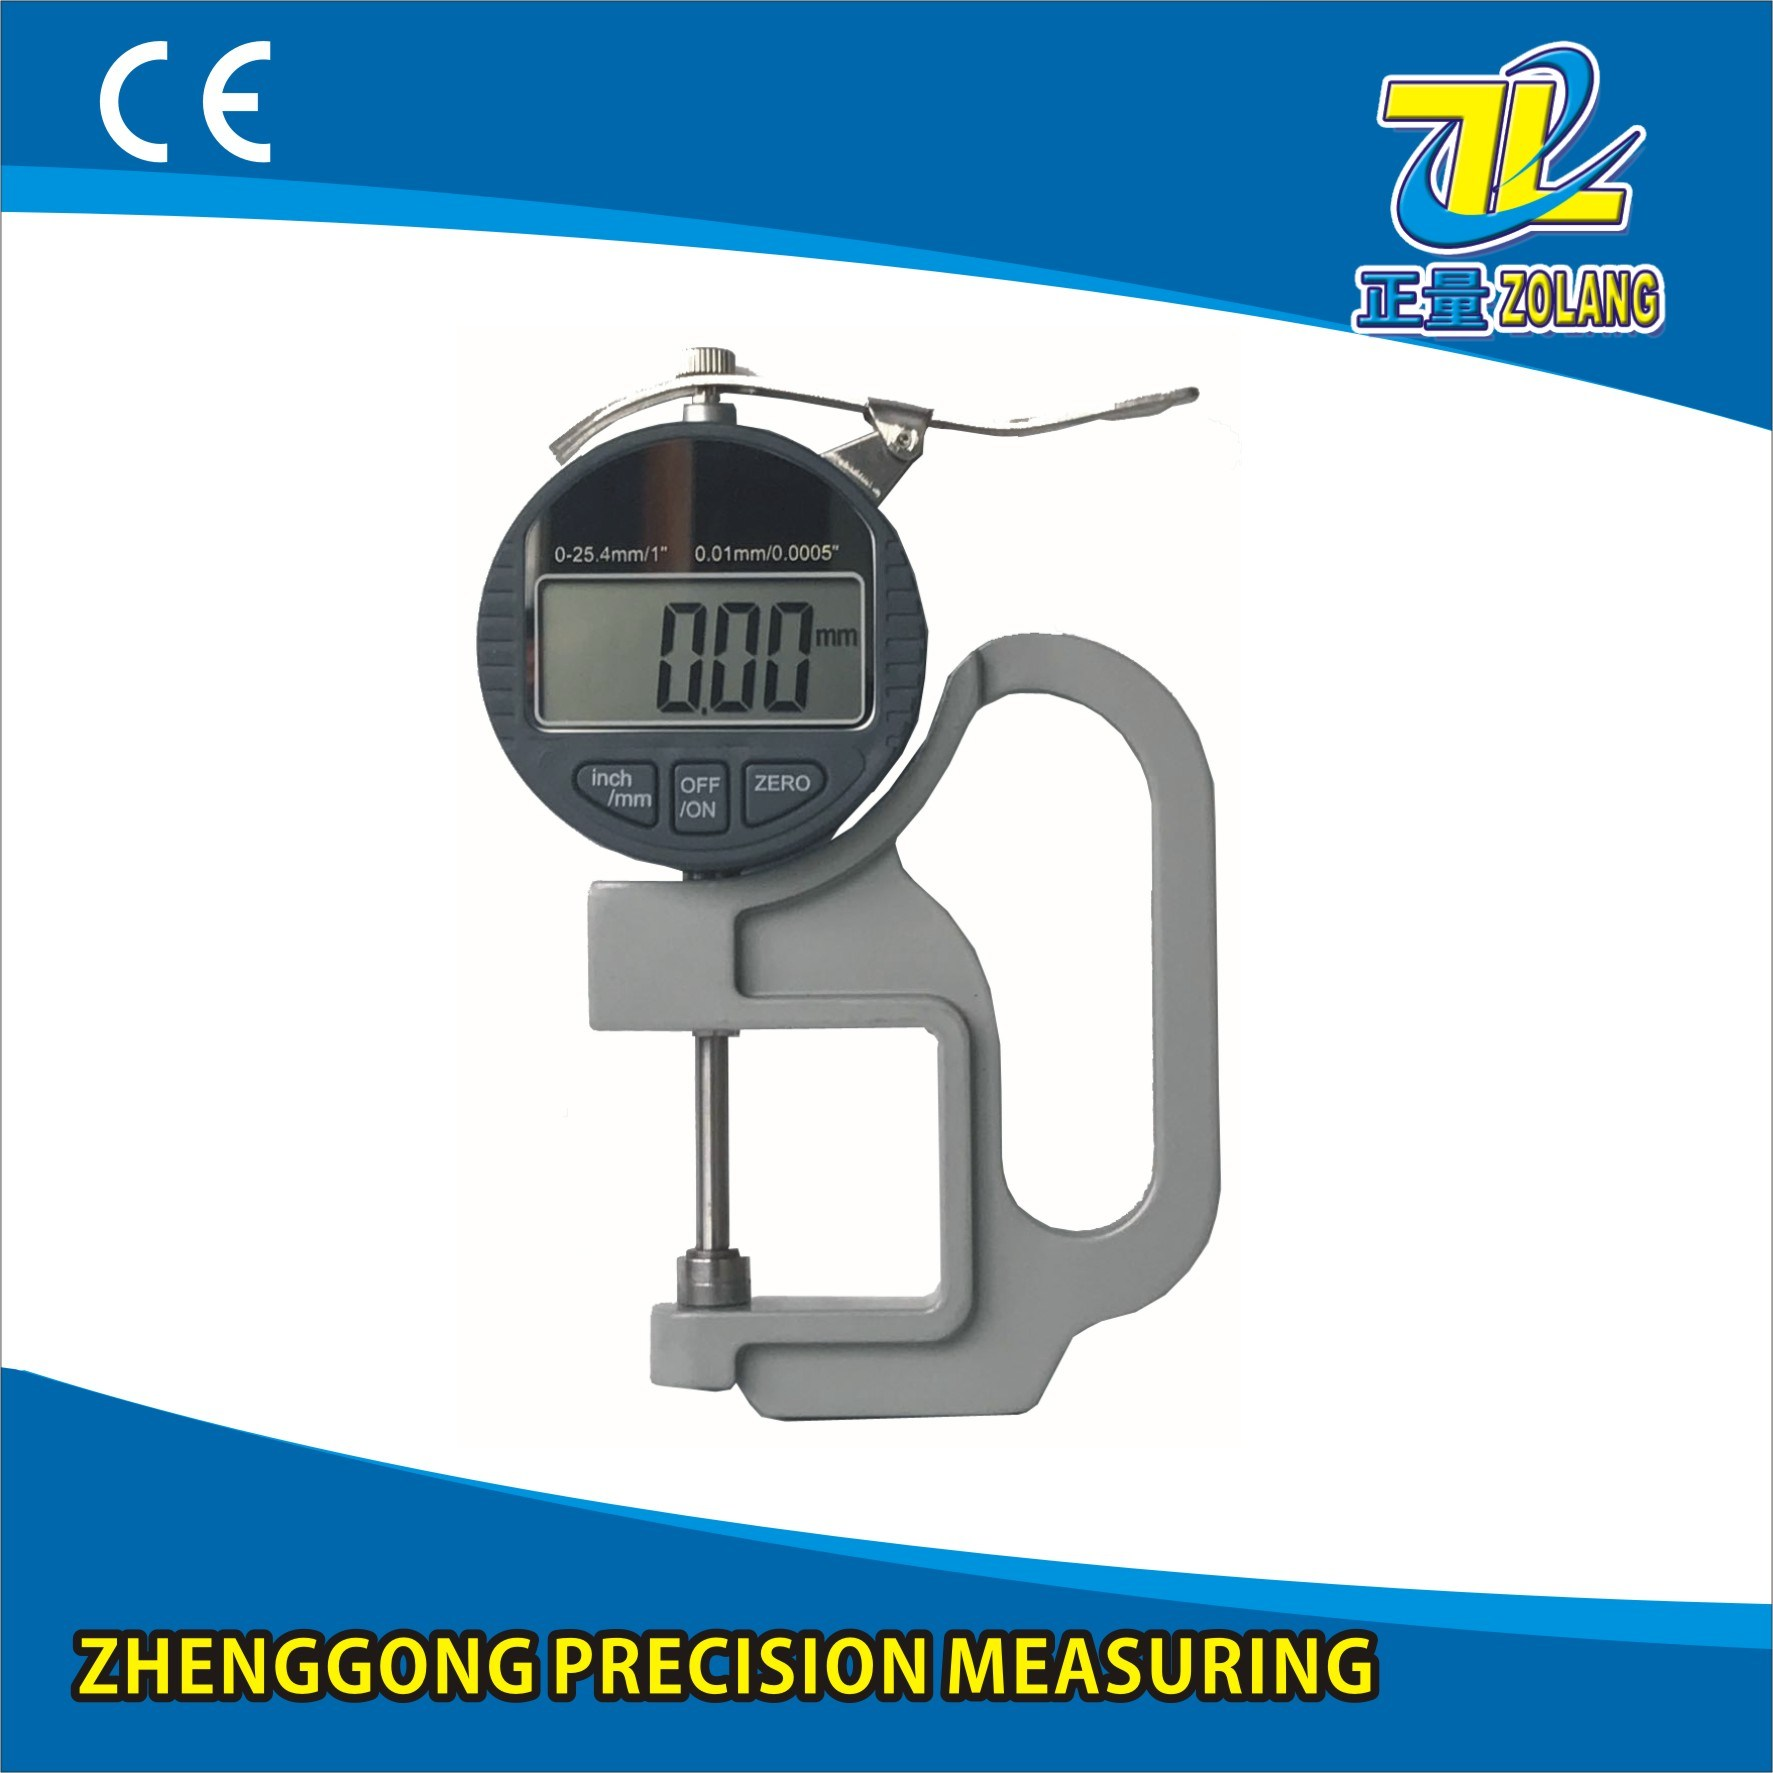 0-25.4/0.01mm Digital Thickness Gauge